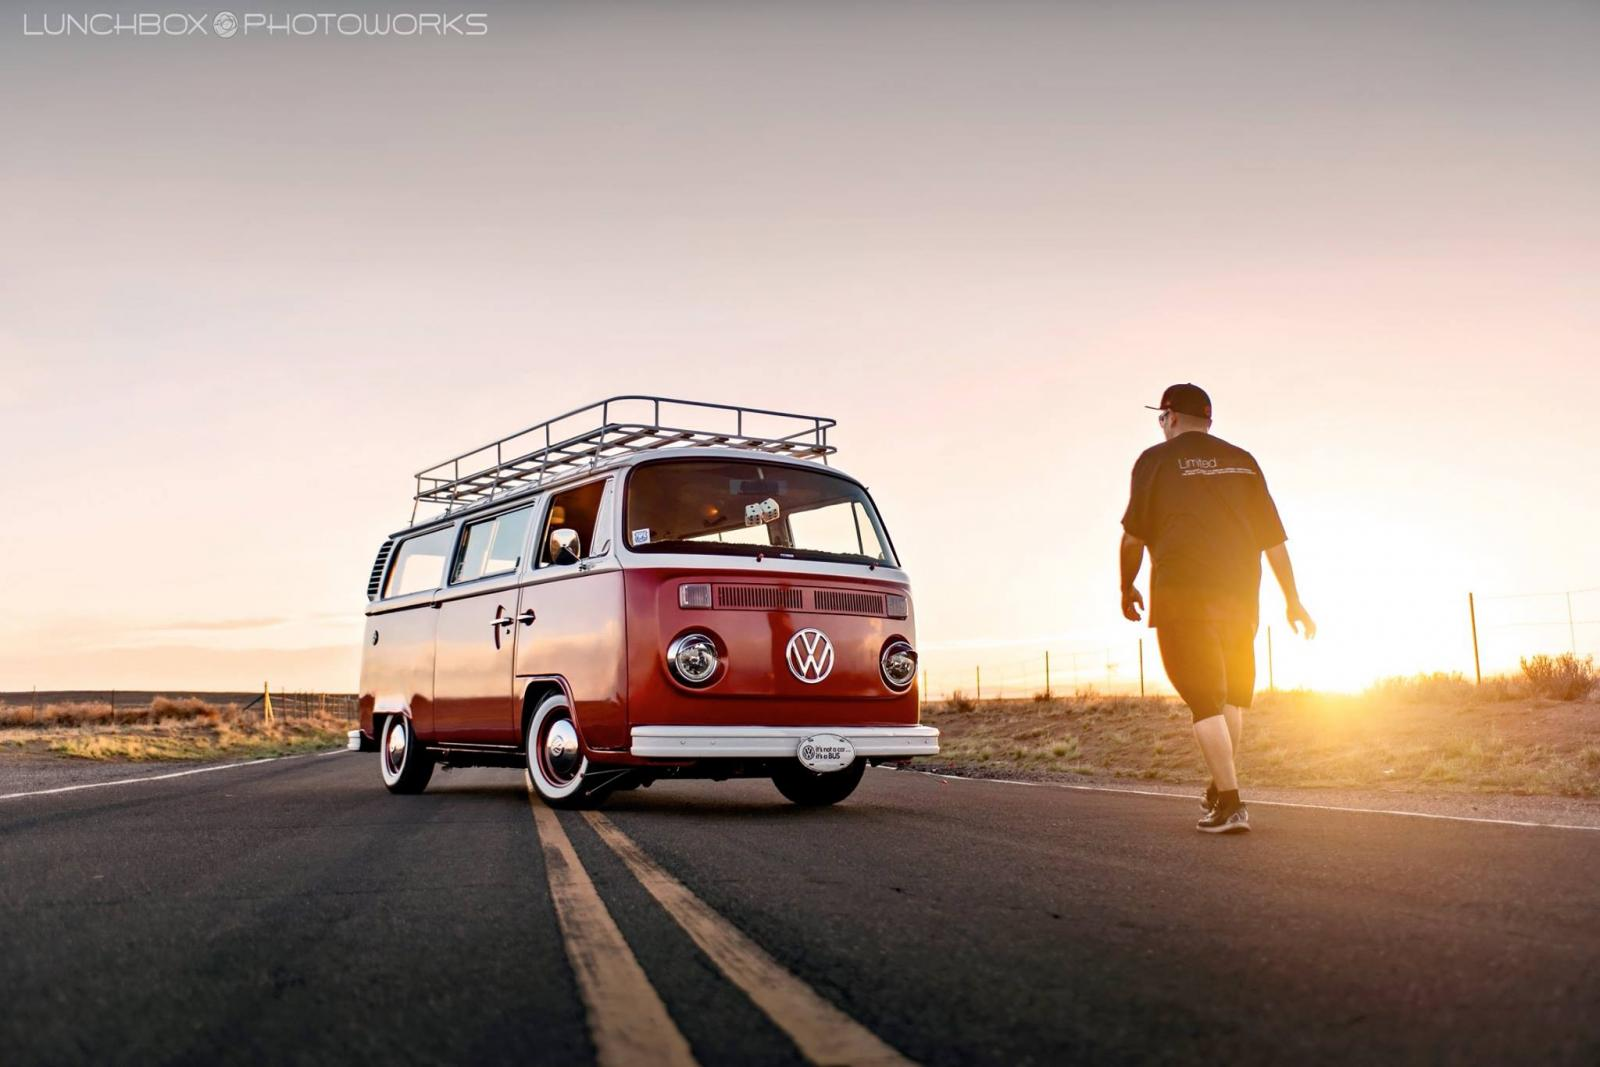 17 VW Busses at Sunset